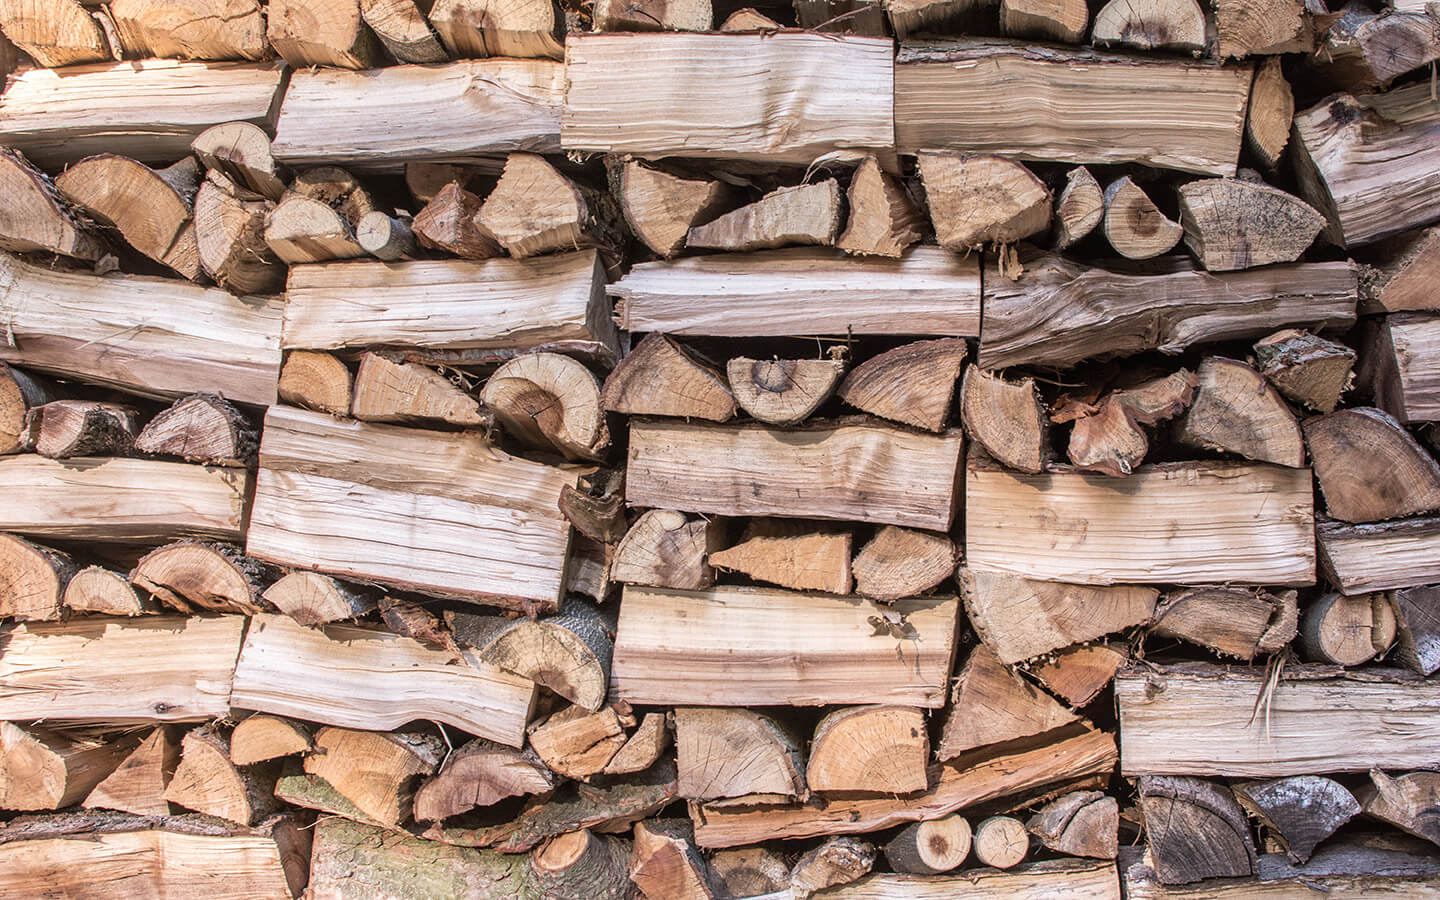 Wood pile in the garden